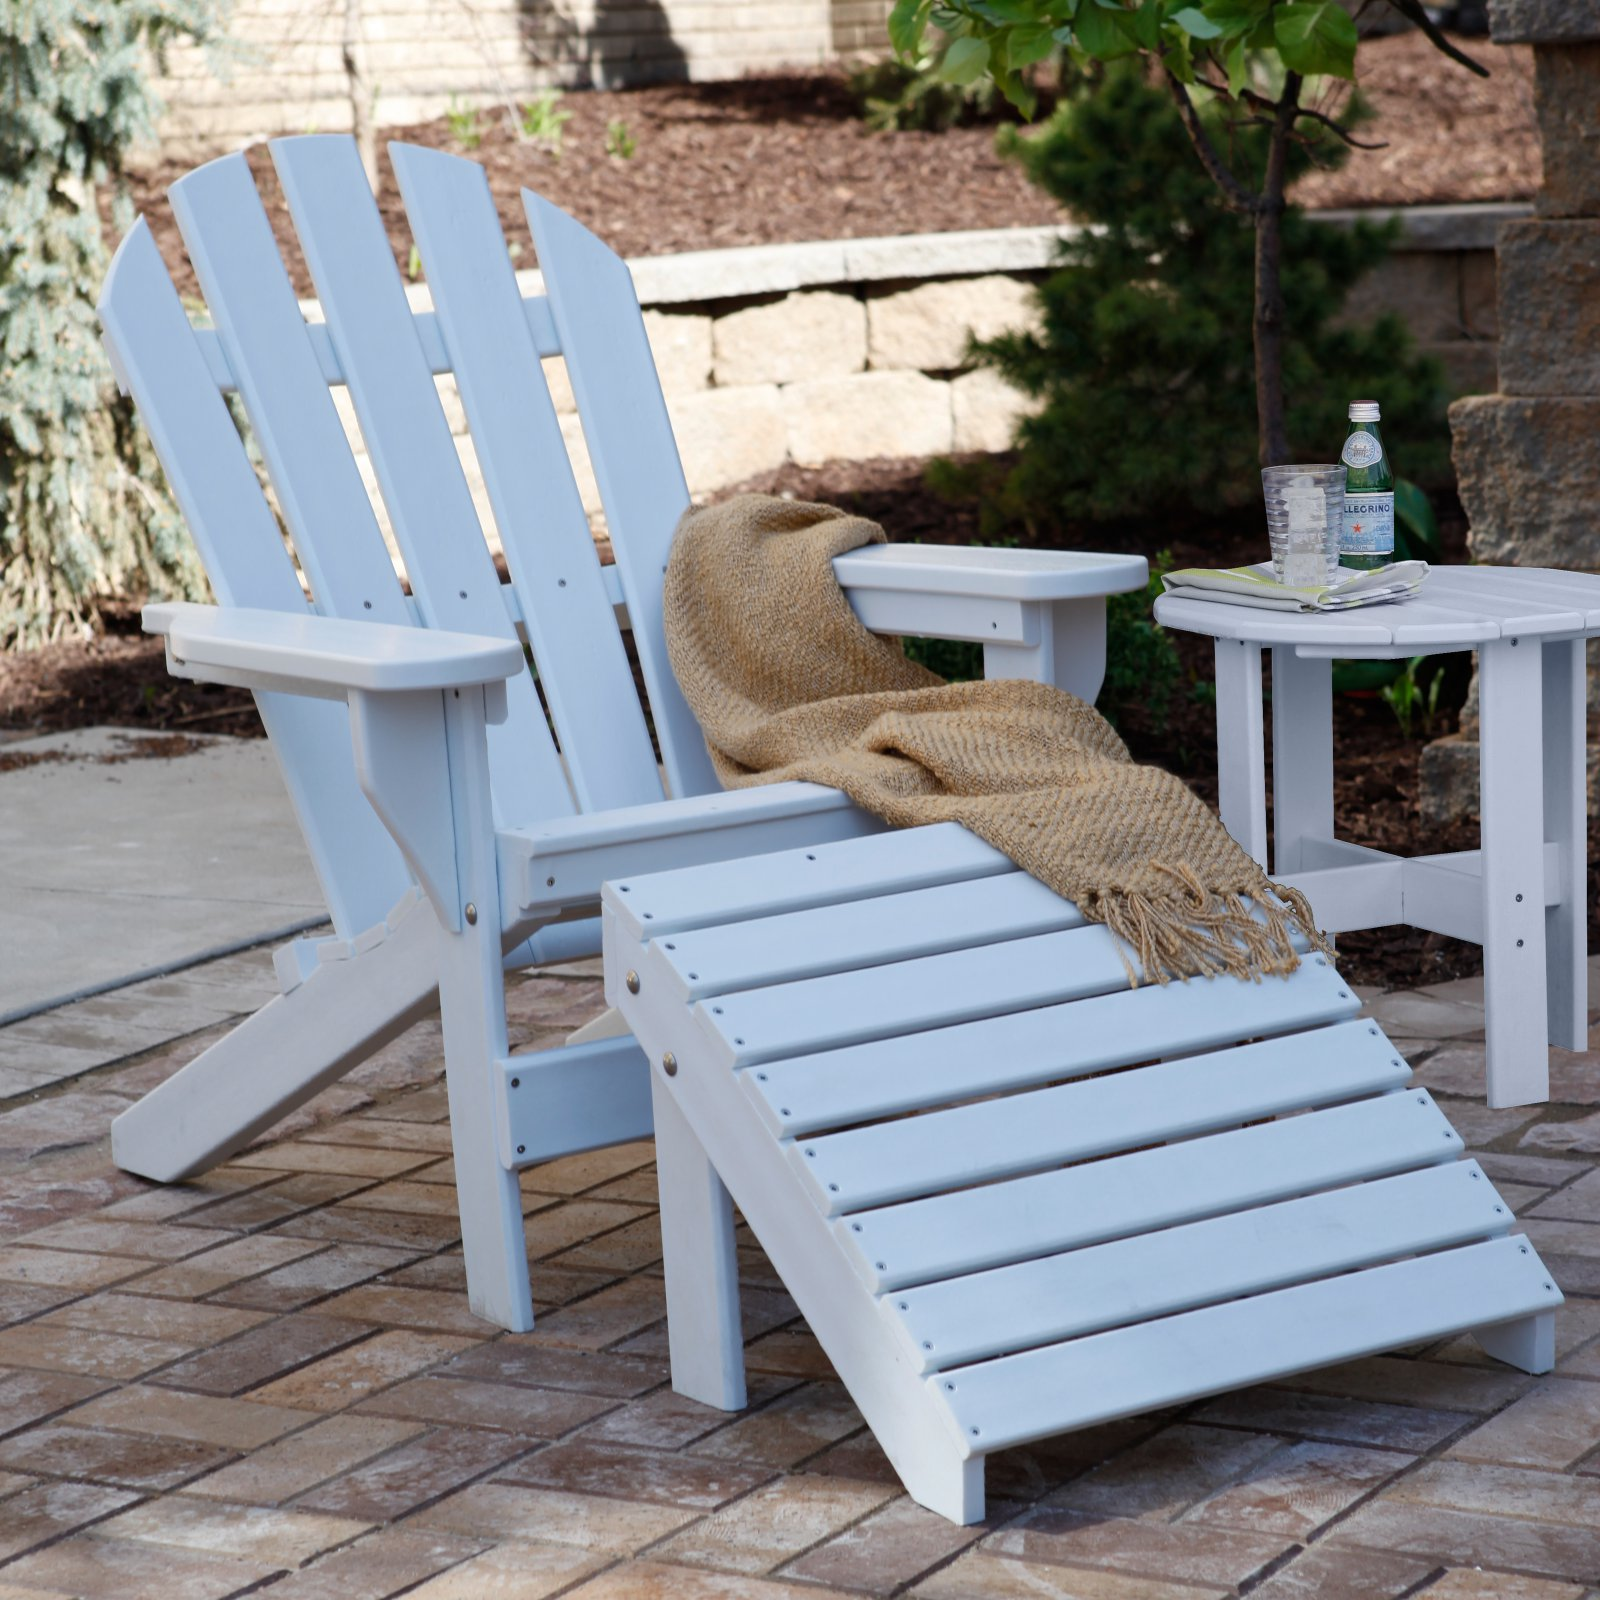 Jayhawk Plastics Cape Cod Adirondack Chair WIth Ottoman and Side Table